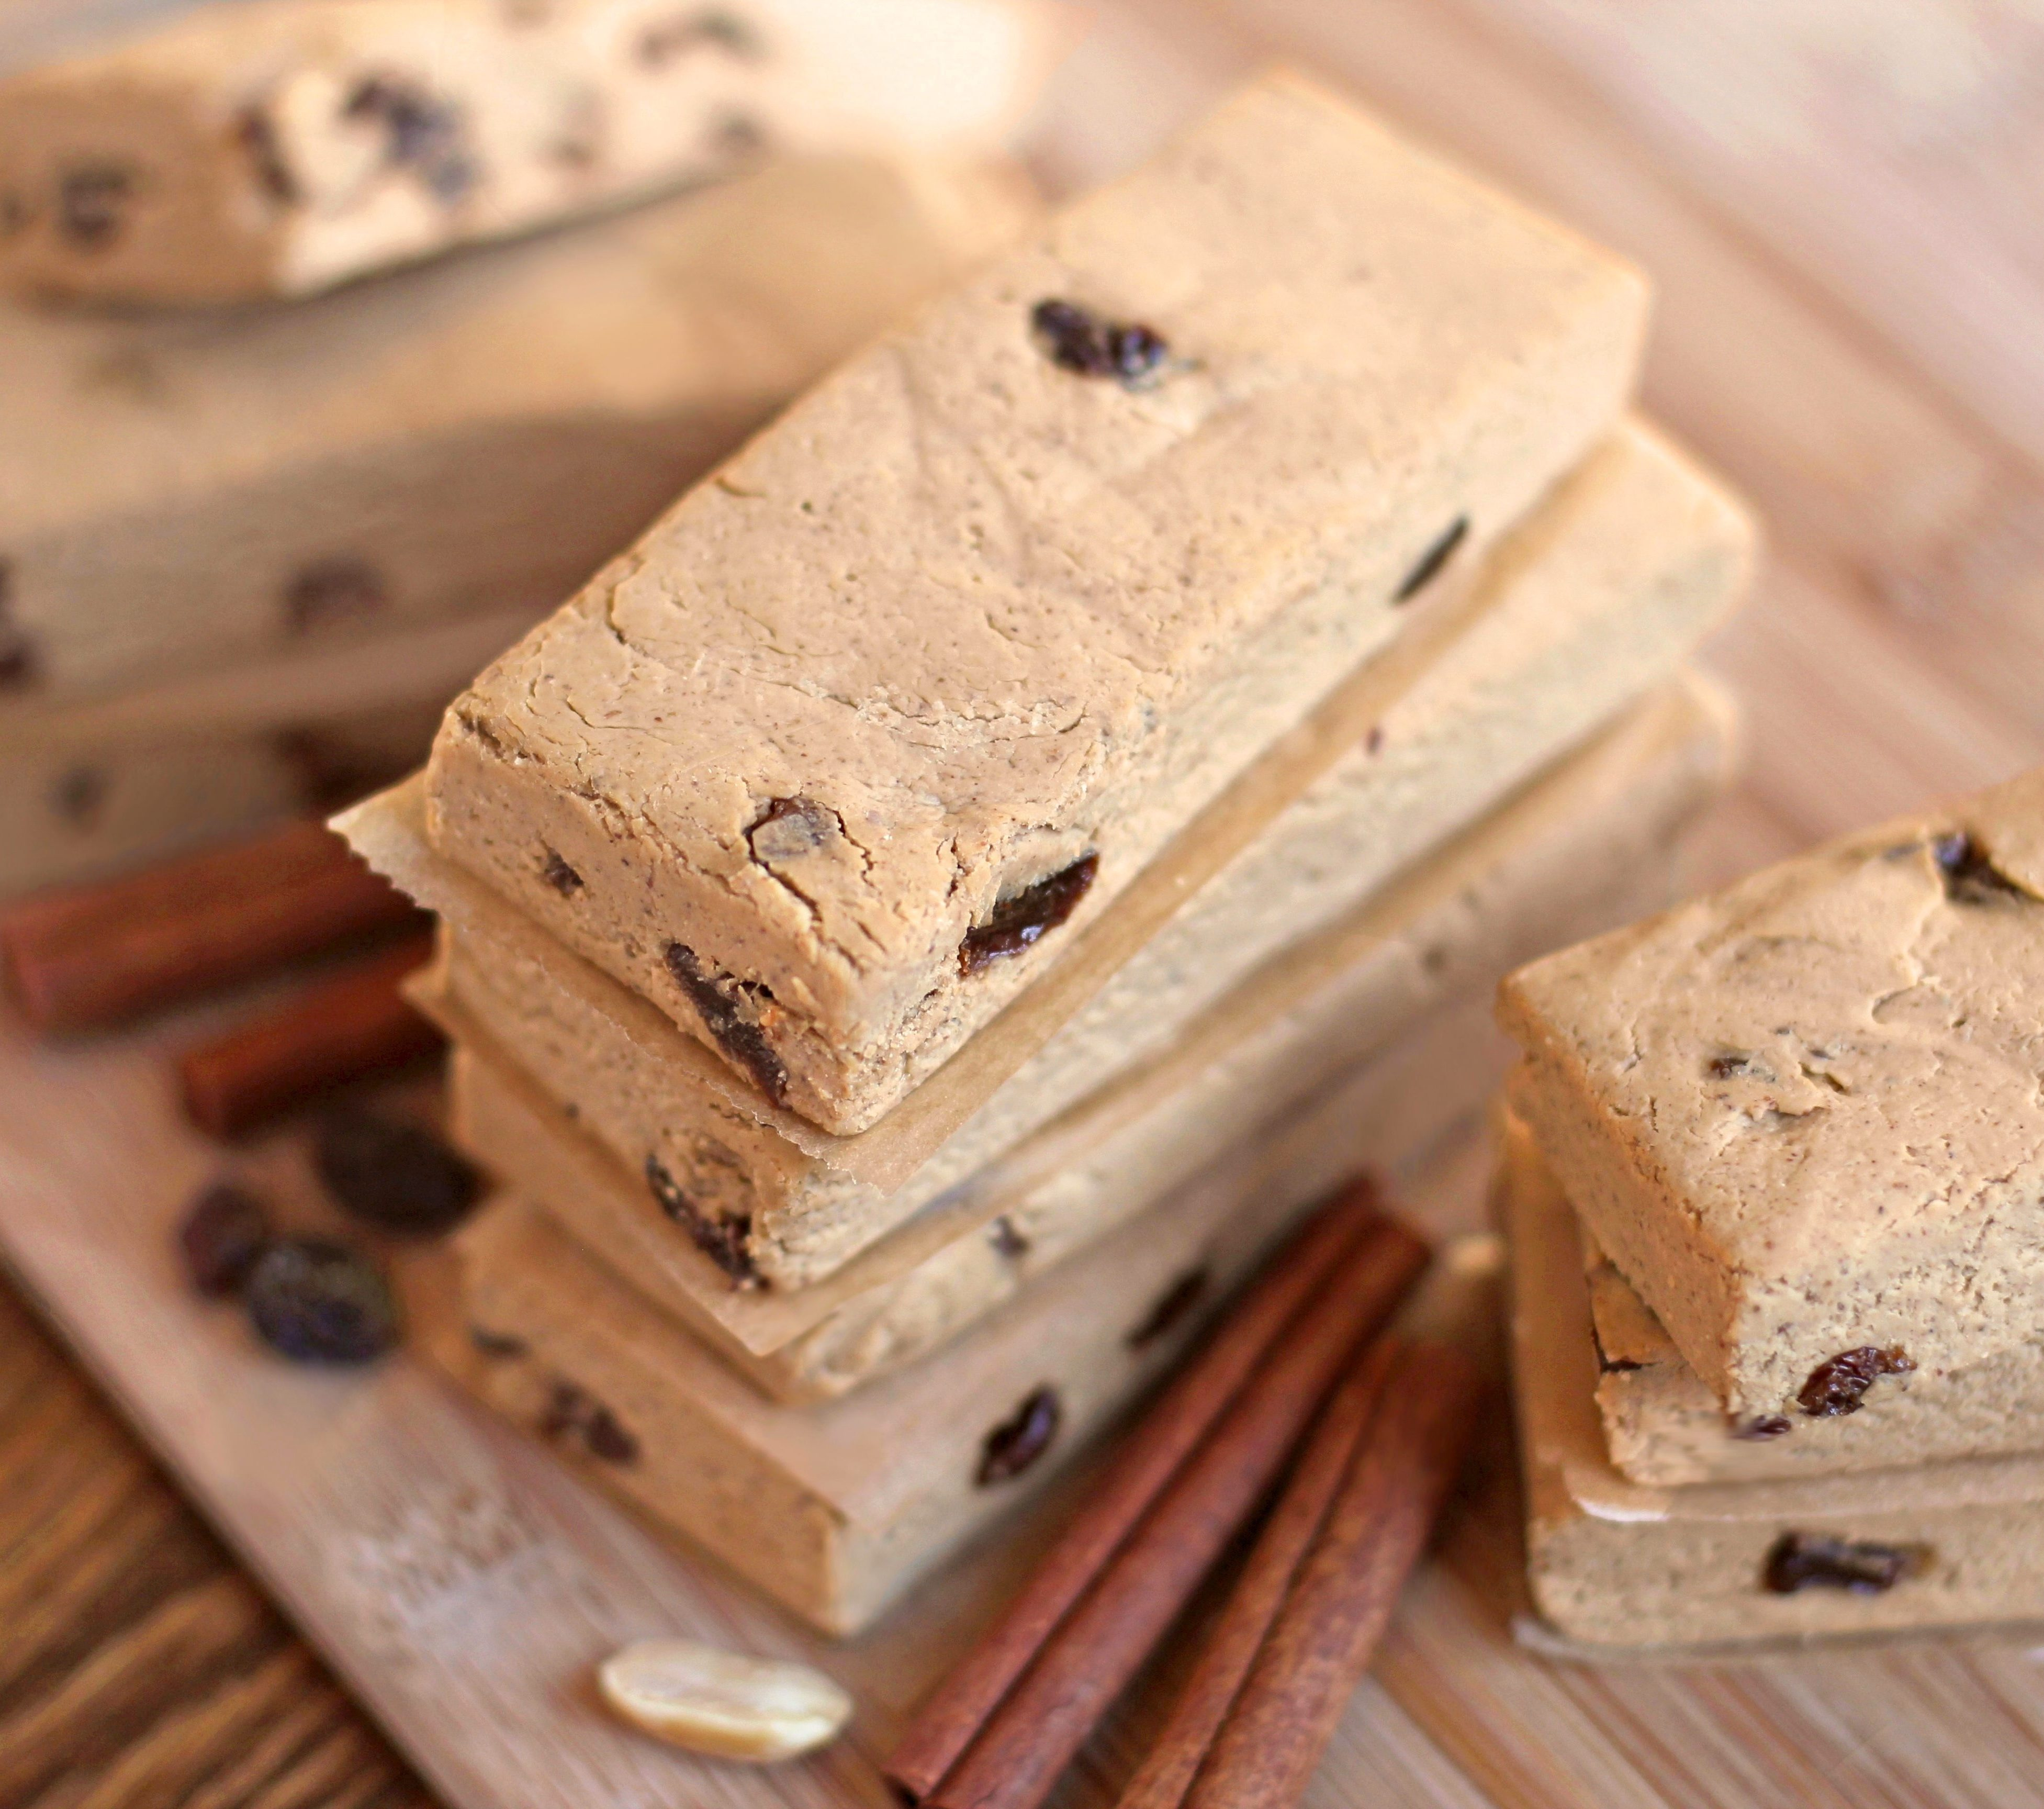 Healthy Cinnamon Raisin Peanut Butter Protein Bars recipe (low sugar, high protein, gluten free, dairy free, vegan) - Healthy Dessert Recipes at Desserts with Benefits